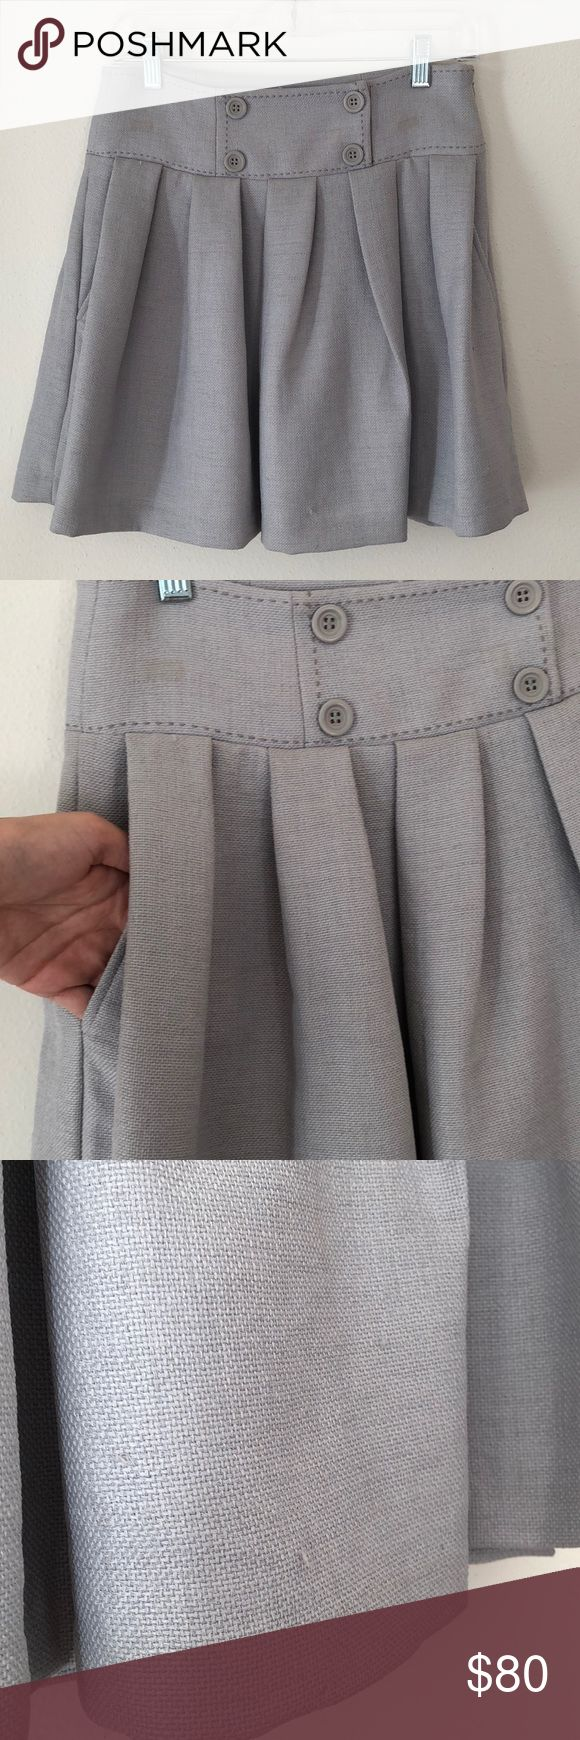 BCBG Generation grey skirt Perfect work skirt this offers functional pockets and a side zipper closure. BCBGeneration Skirts Midi